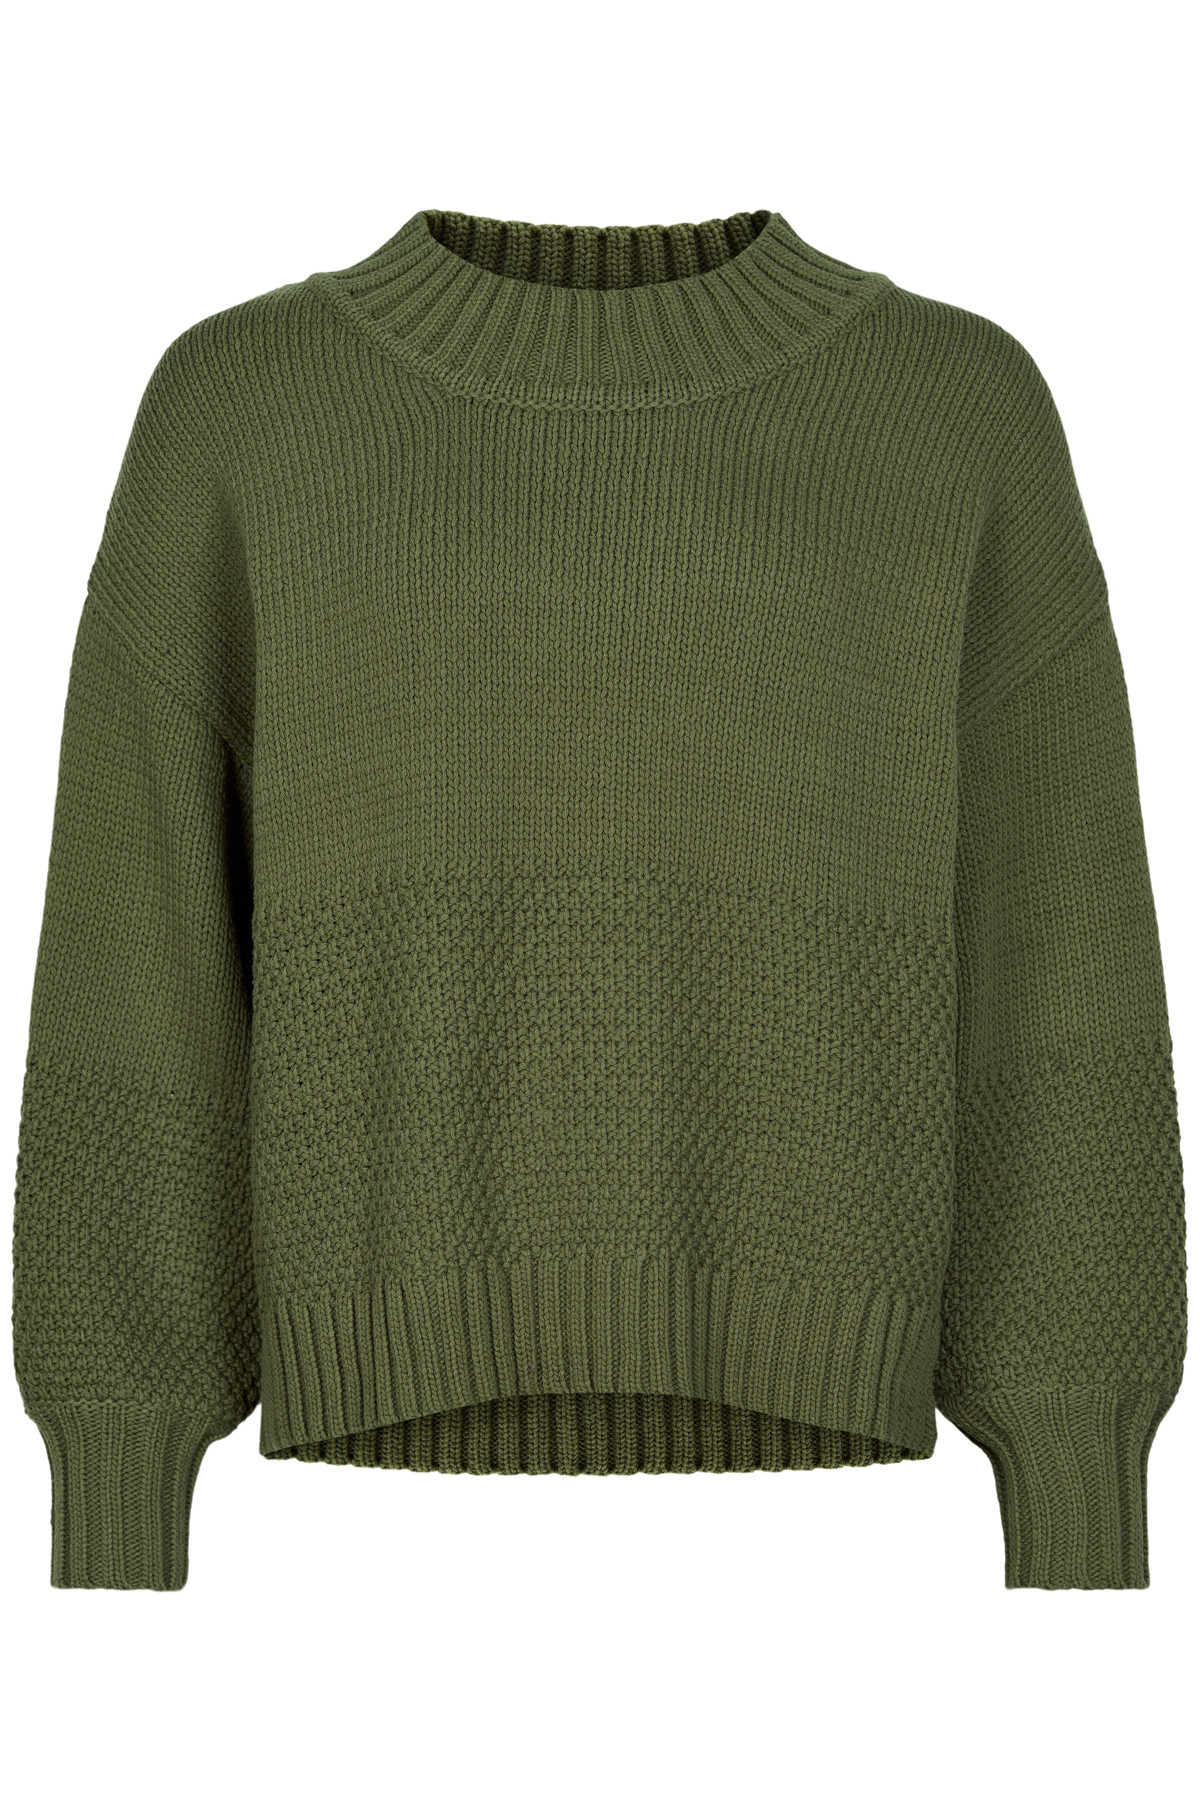 Image of   AND LESS ALANIESE PULLOVER 5120203 I (Ivy Green, L)